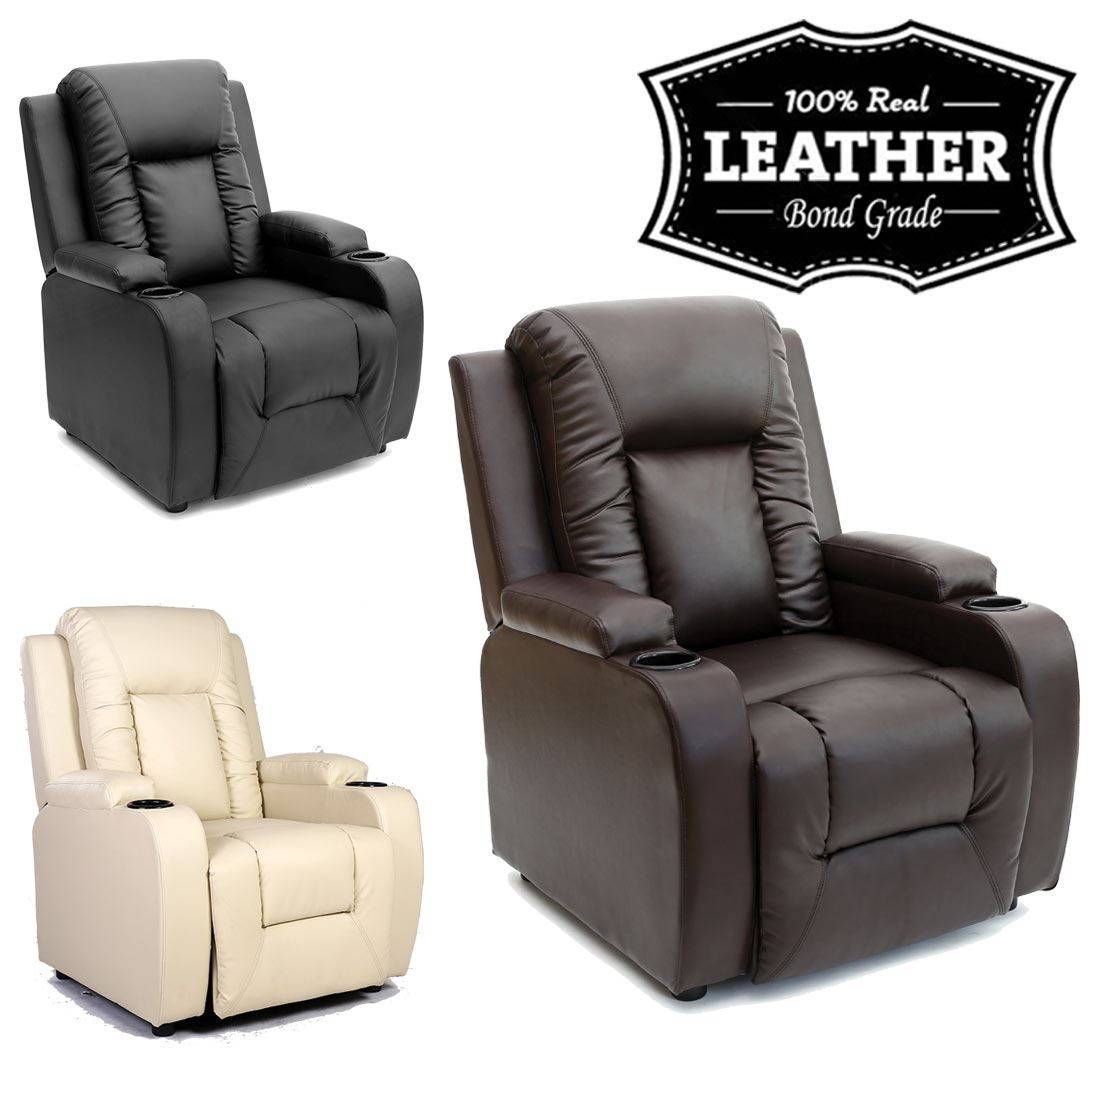 Oscar Leather Recliner W Drink Holders Armchair Sofa Chair throughout Sofa Chair Recliner (Image 20 of 30)